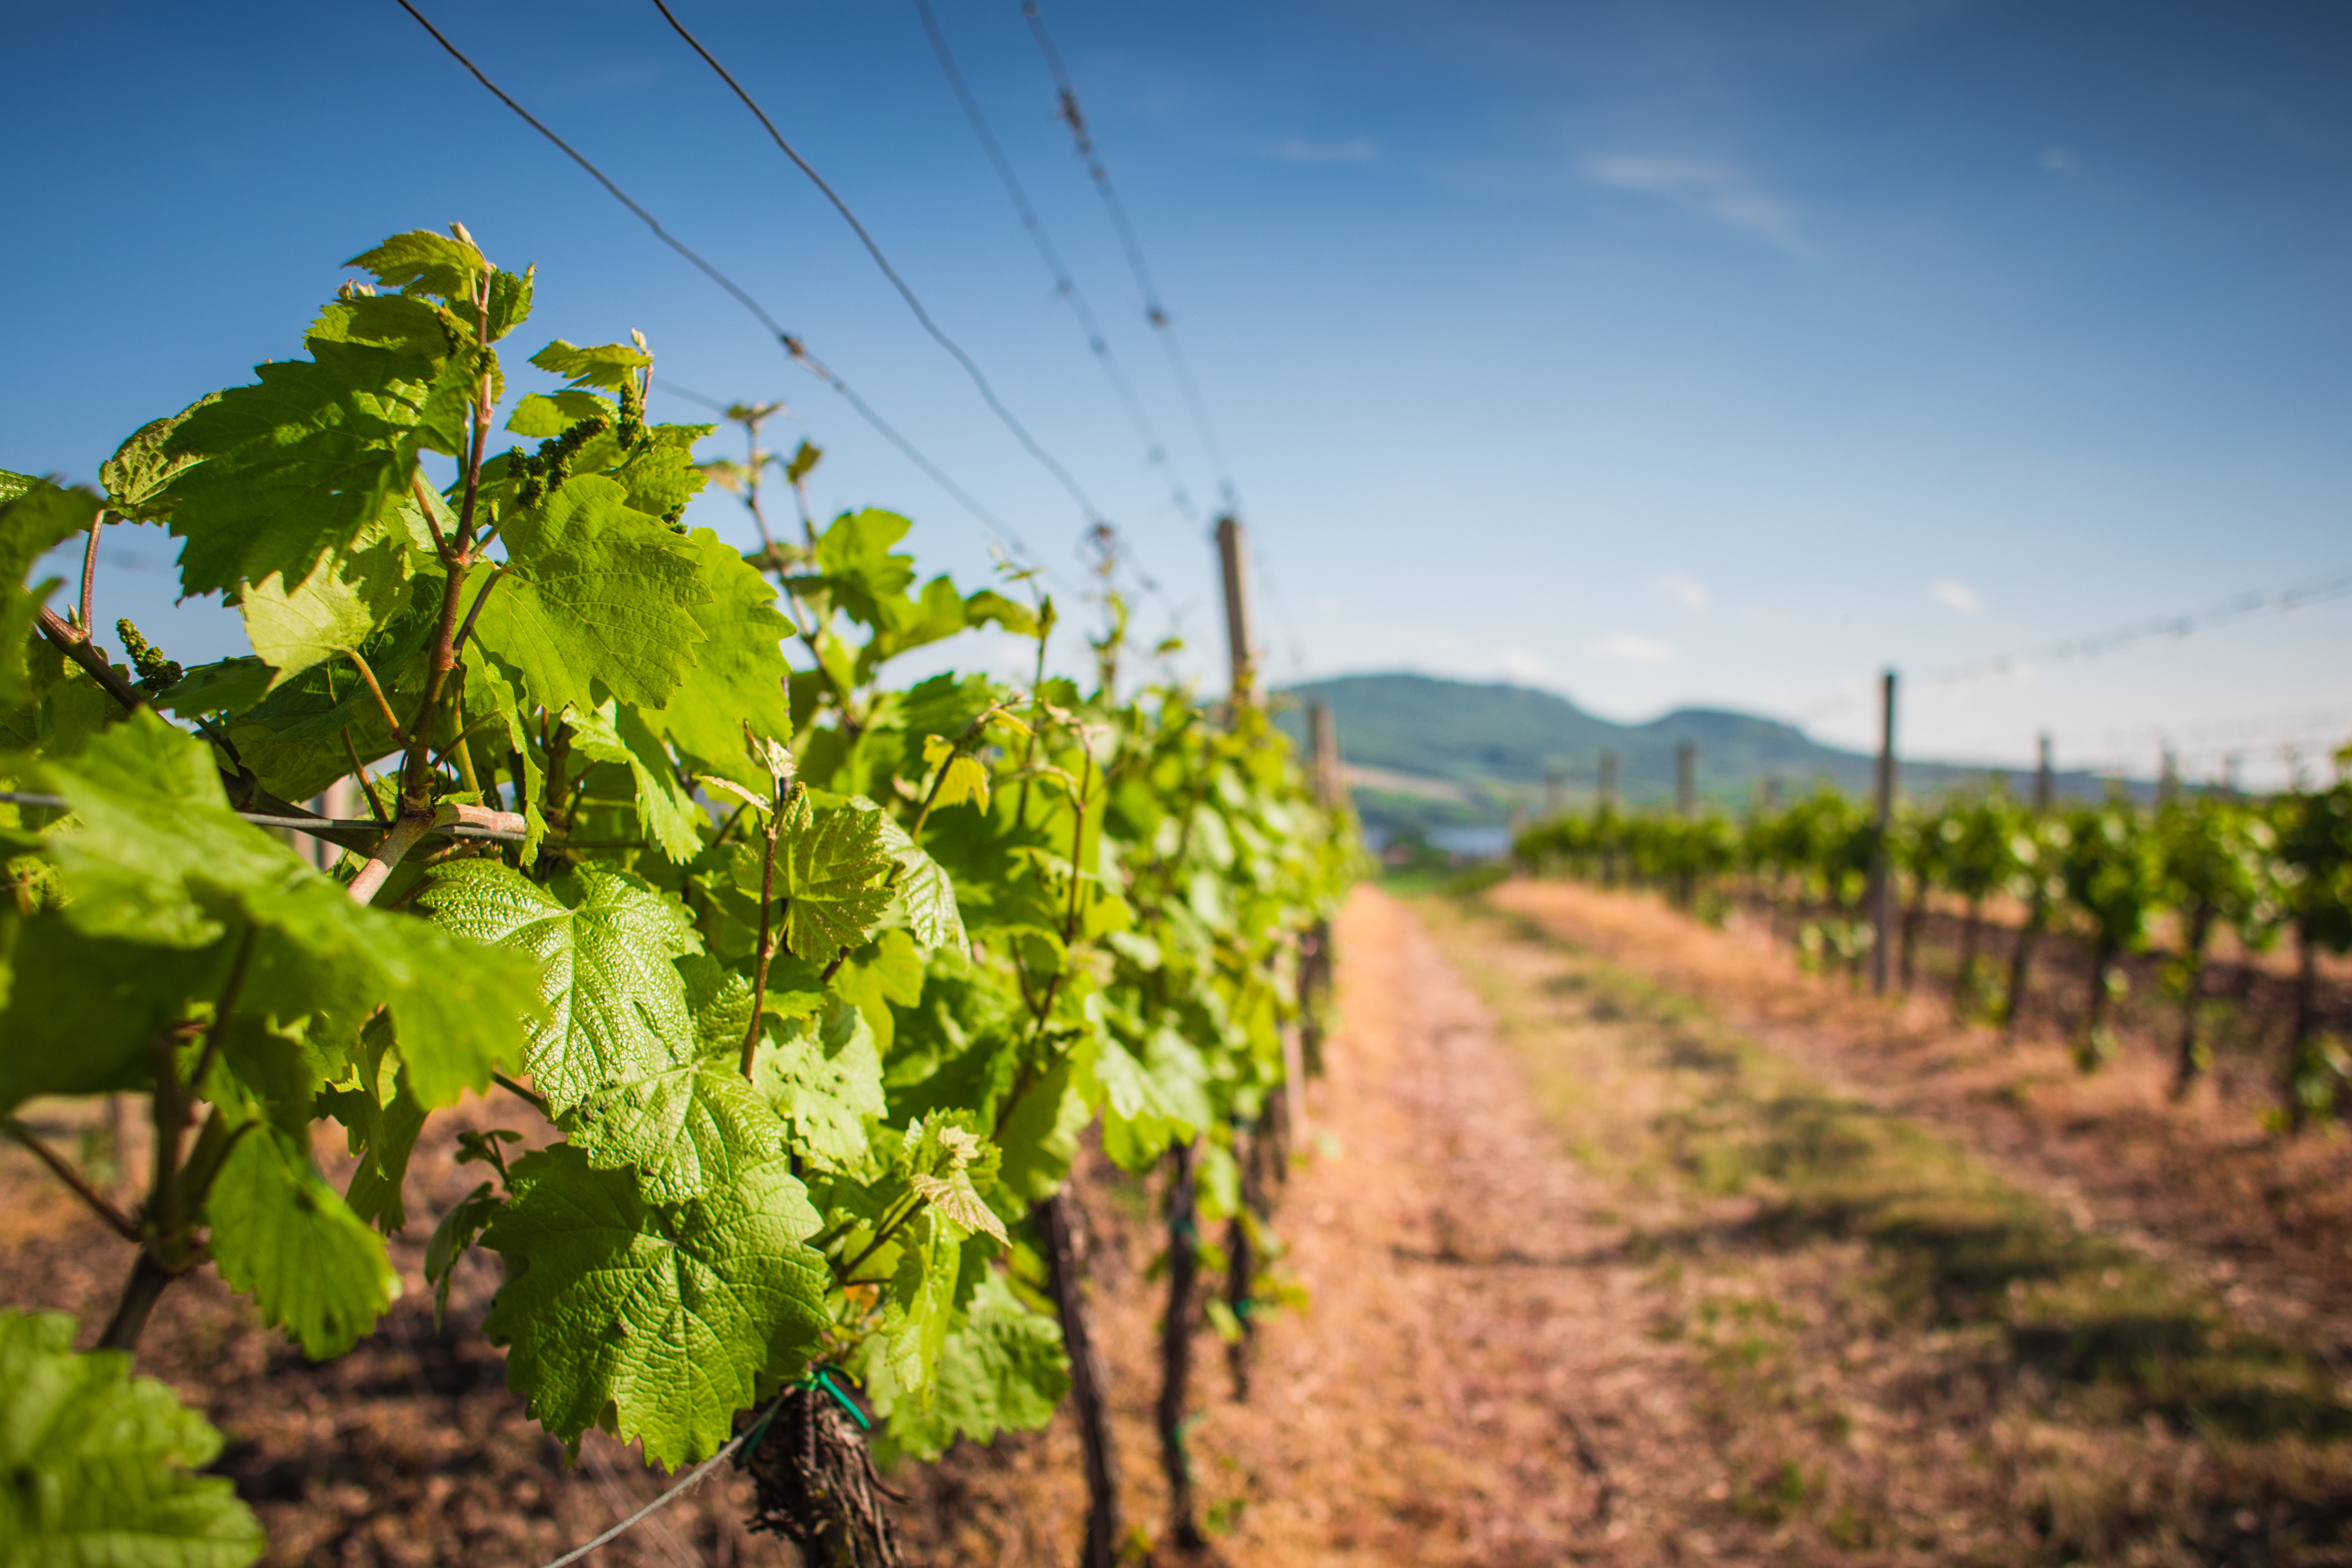 Download Vineyard: Waiting For The First Grapes FREE Stock Photo